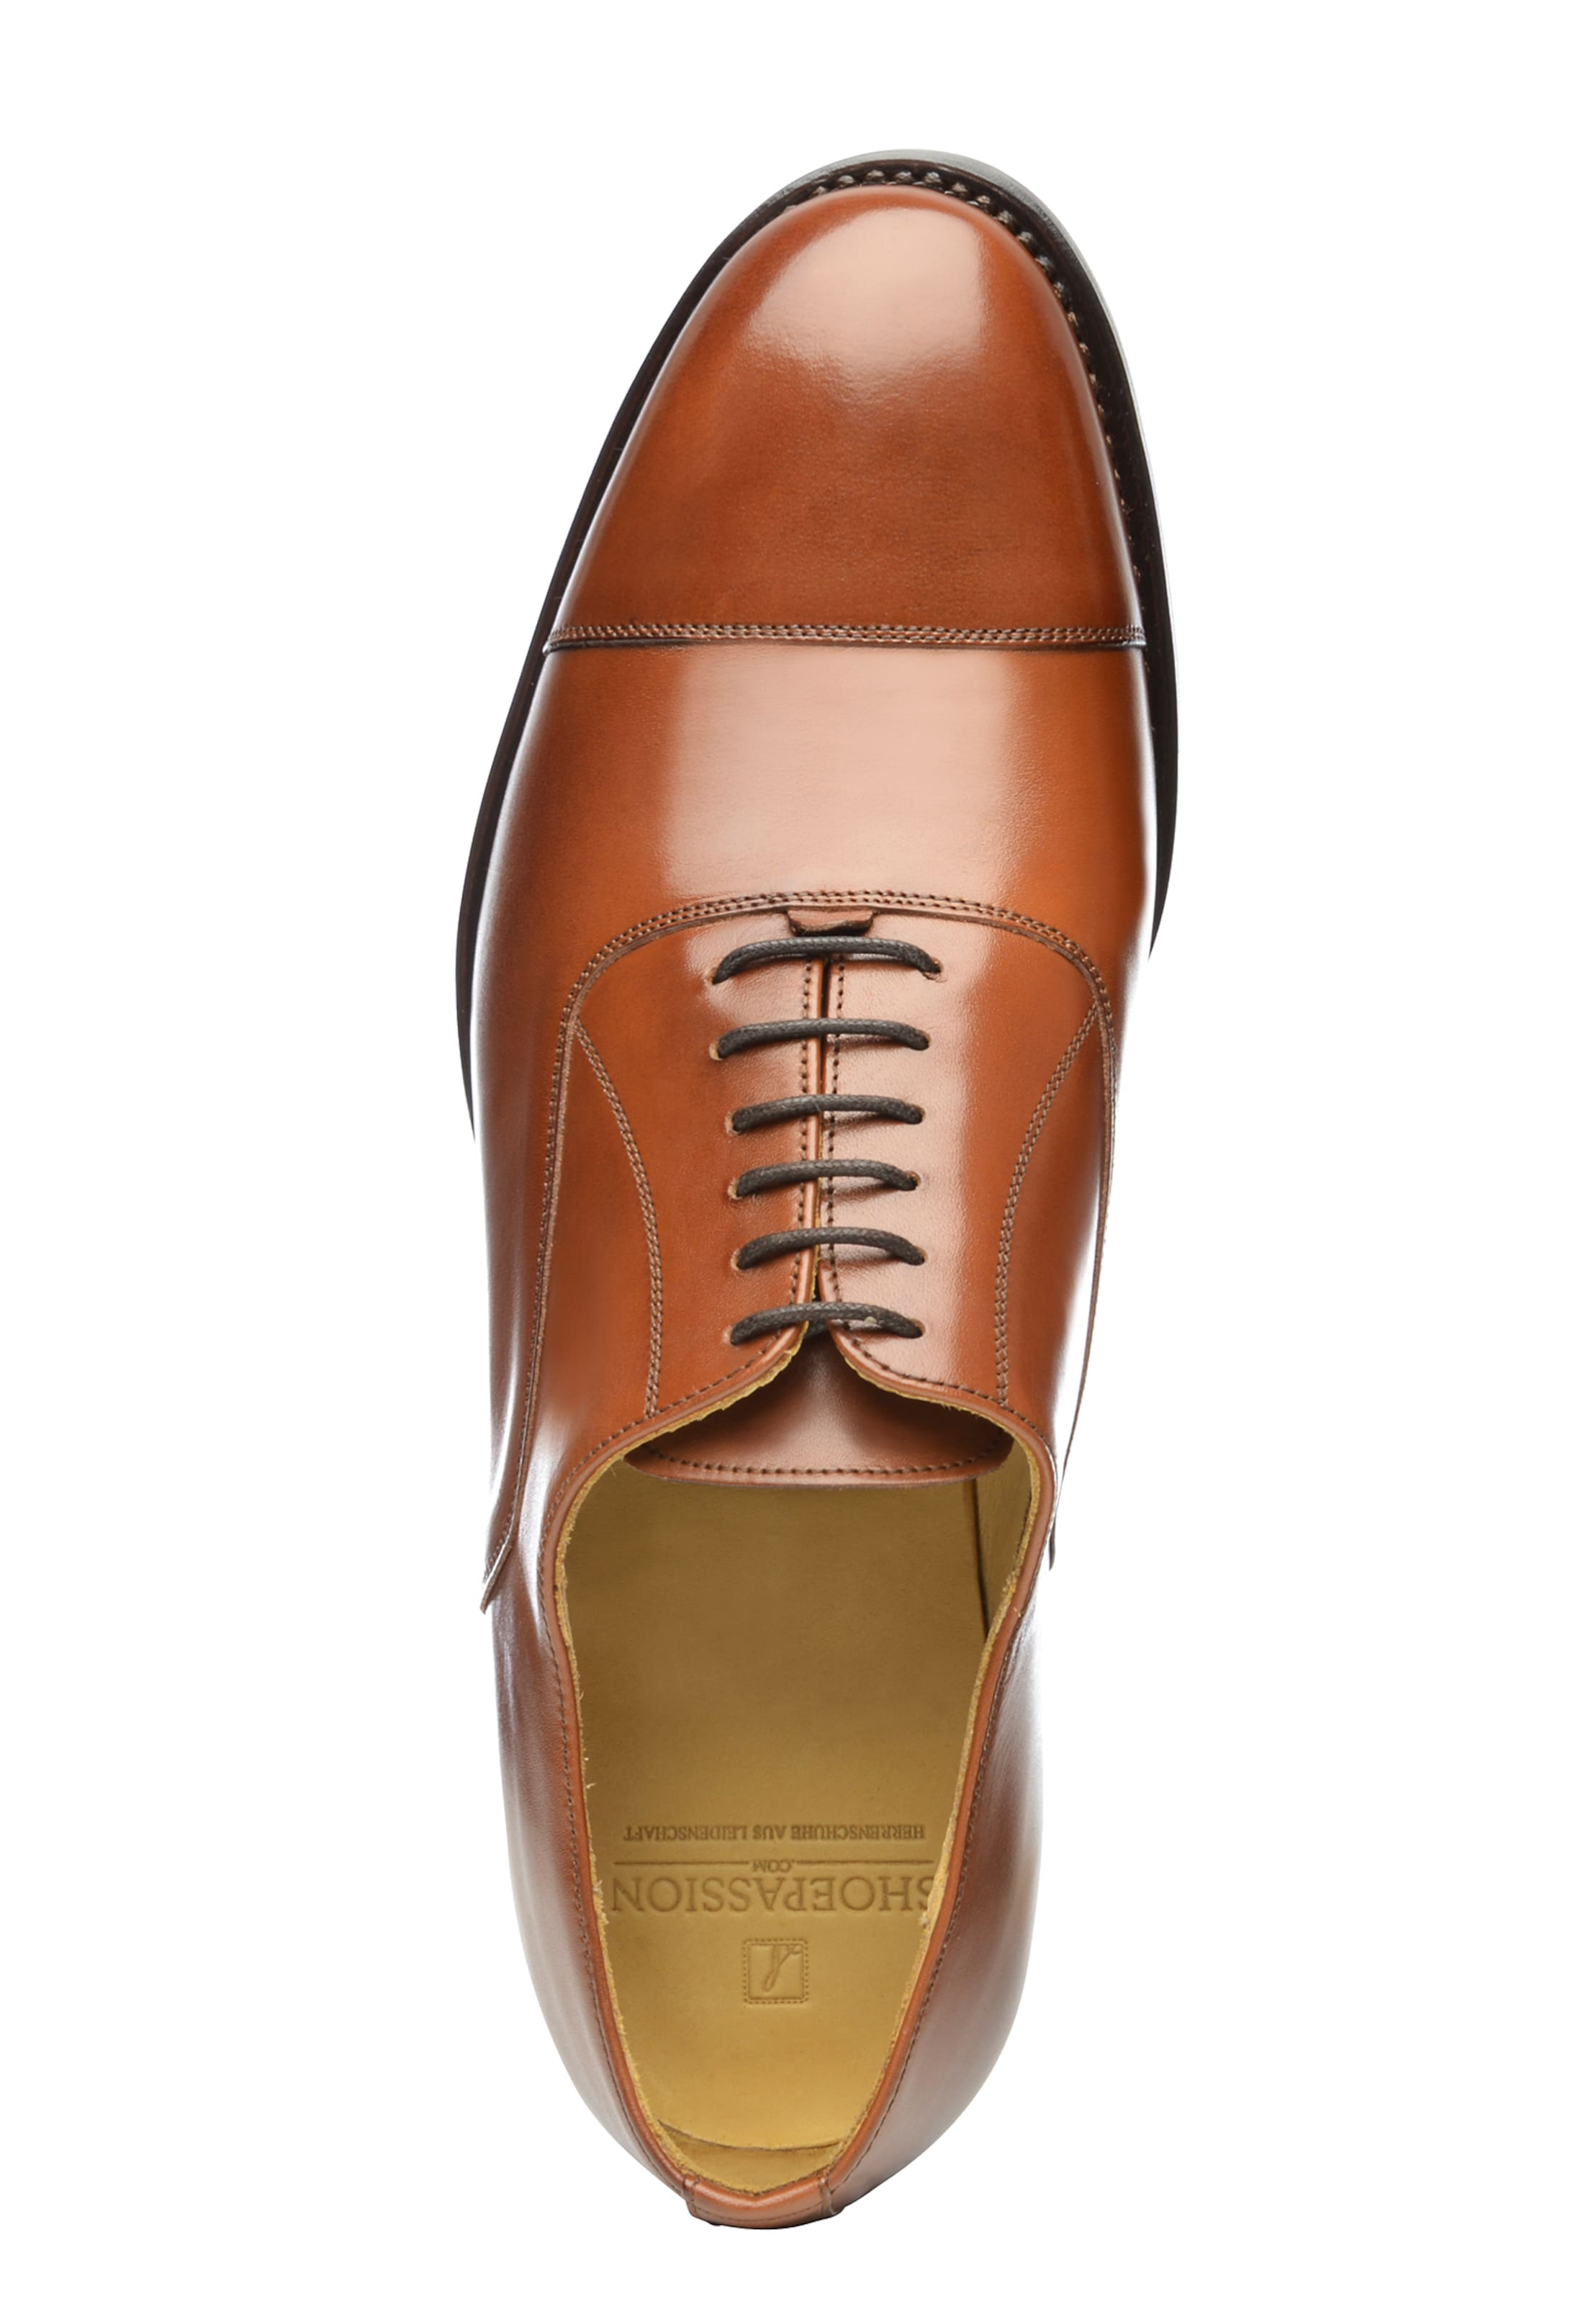 Shoepassion 'no545' In Cognac Businessschuhe In Businessschuhe Businessschuhe Shoepassion Cognac 'no545' Shoepassion In 'no545' shrCBQtdxo